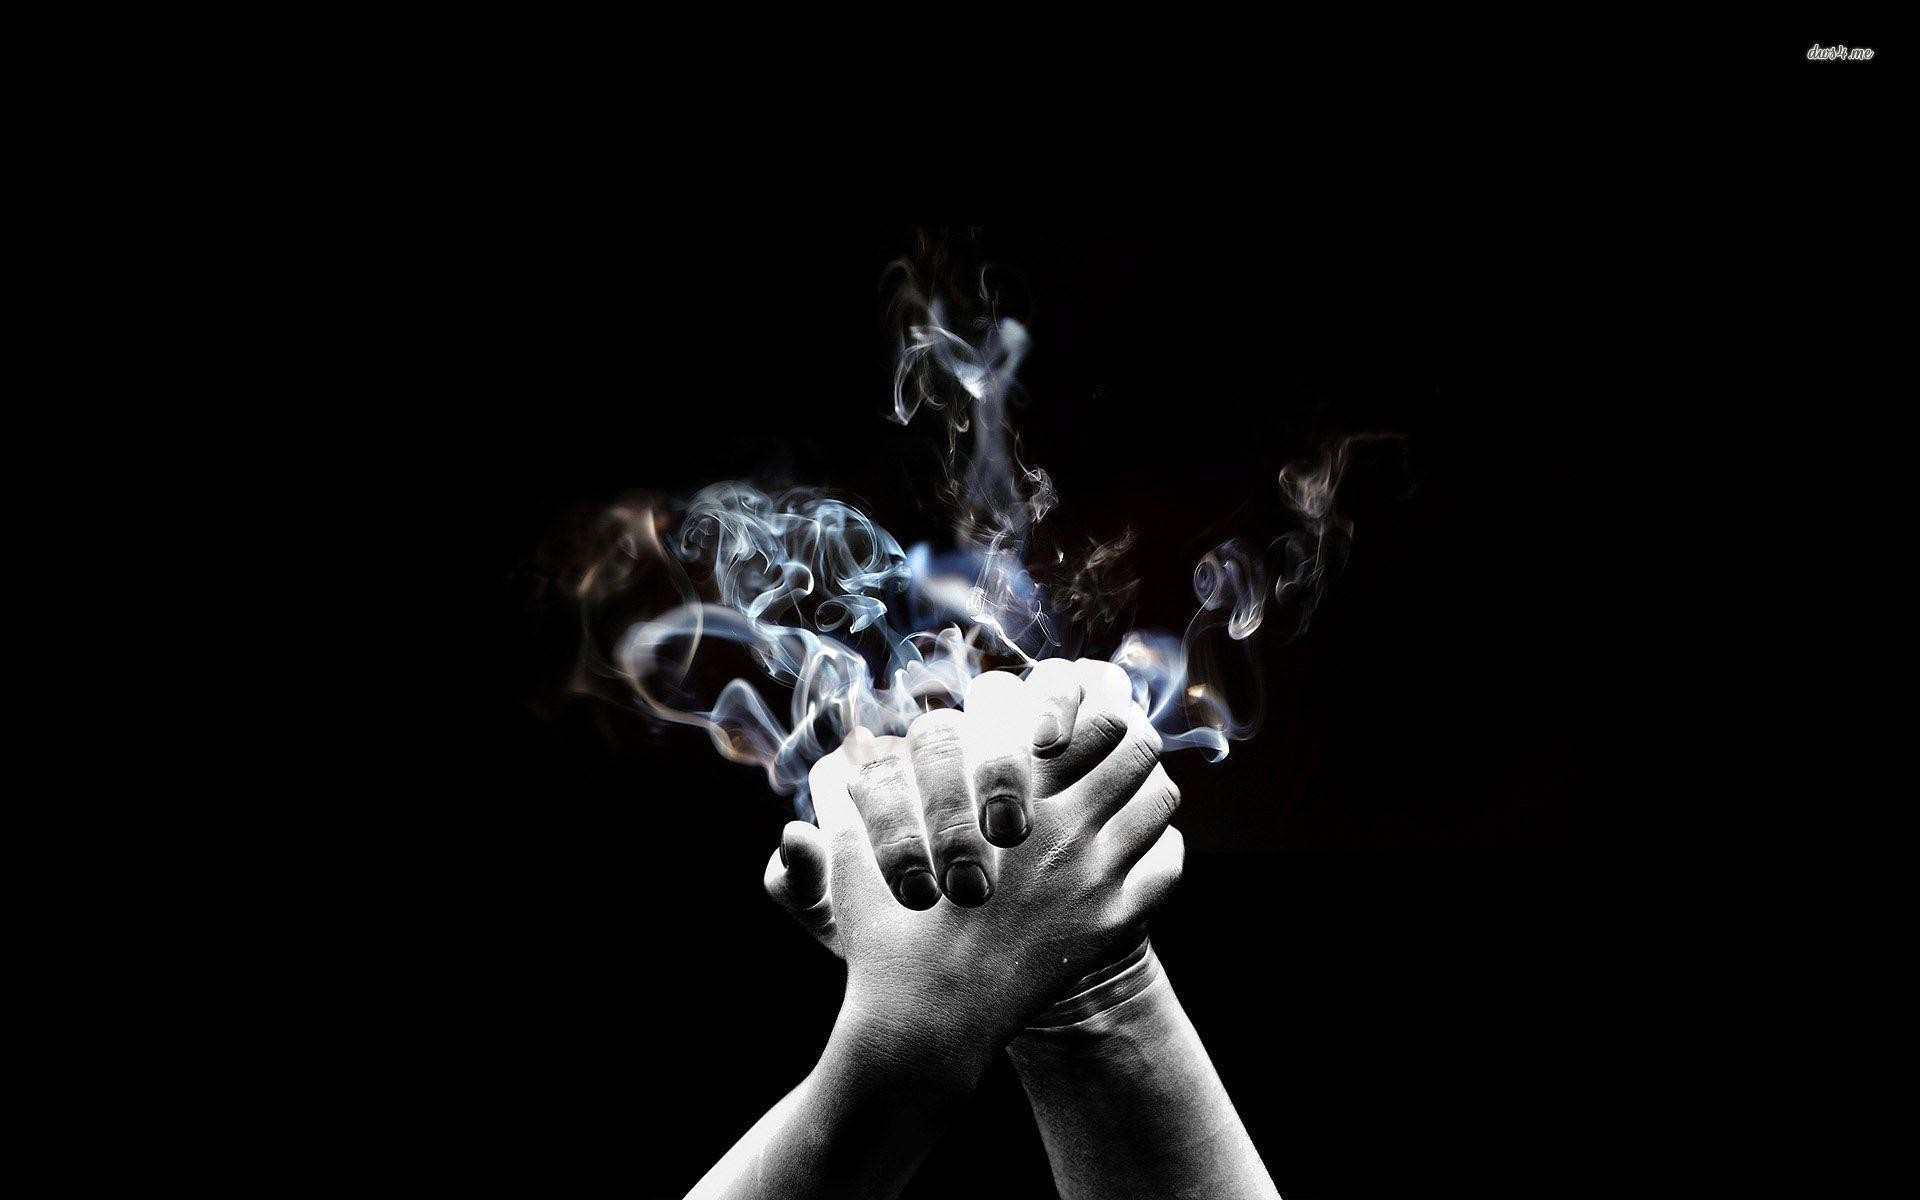 Wallpapers For > Cigarette Smoke Wallpapers Hd